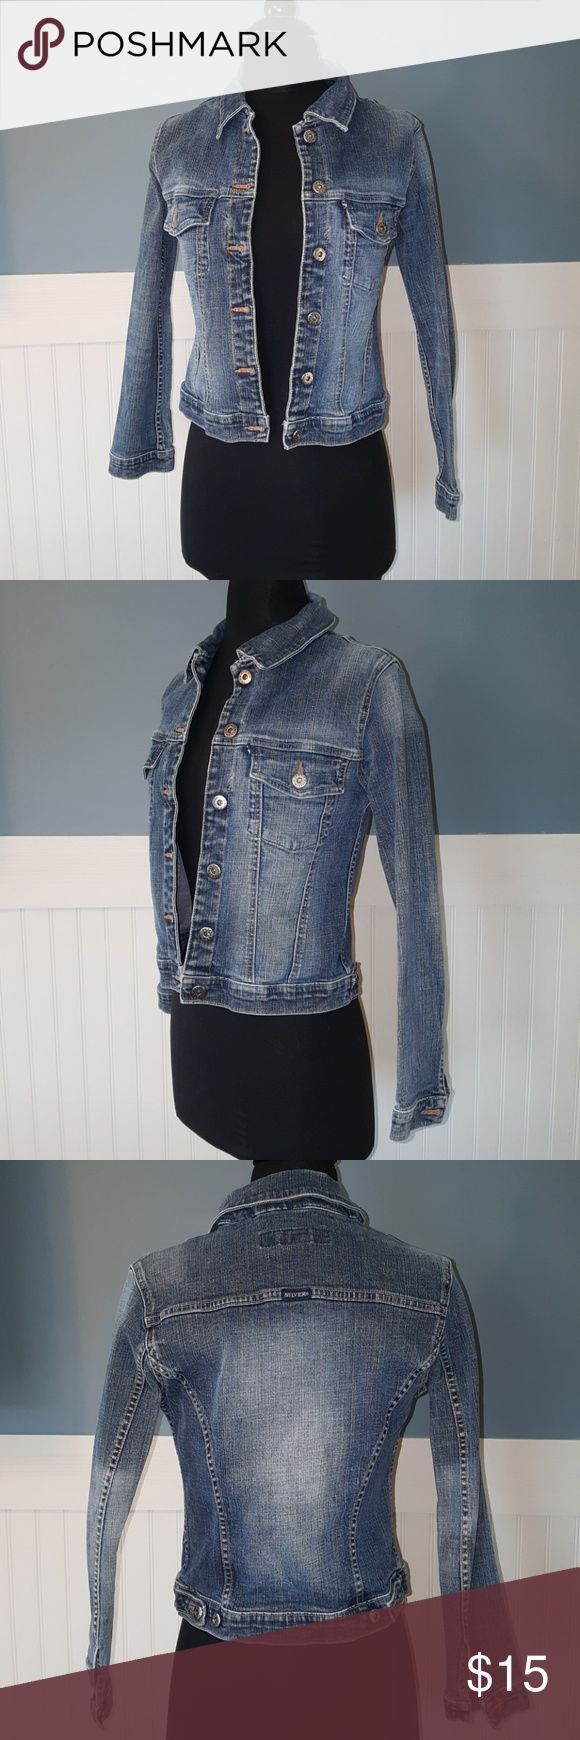 Blue Jean Jacket Silver Jeans Blue Jean Jacket, Juniors size Small, does stretch  Dress form is a size 2, 34-25-32 Silver Jeans Jackets & Coats Jean Jackets